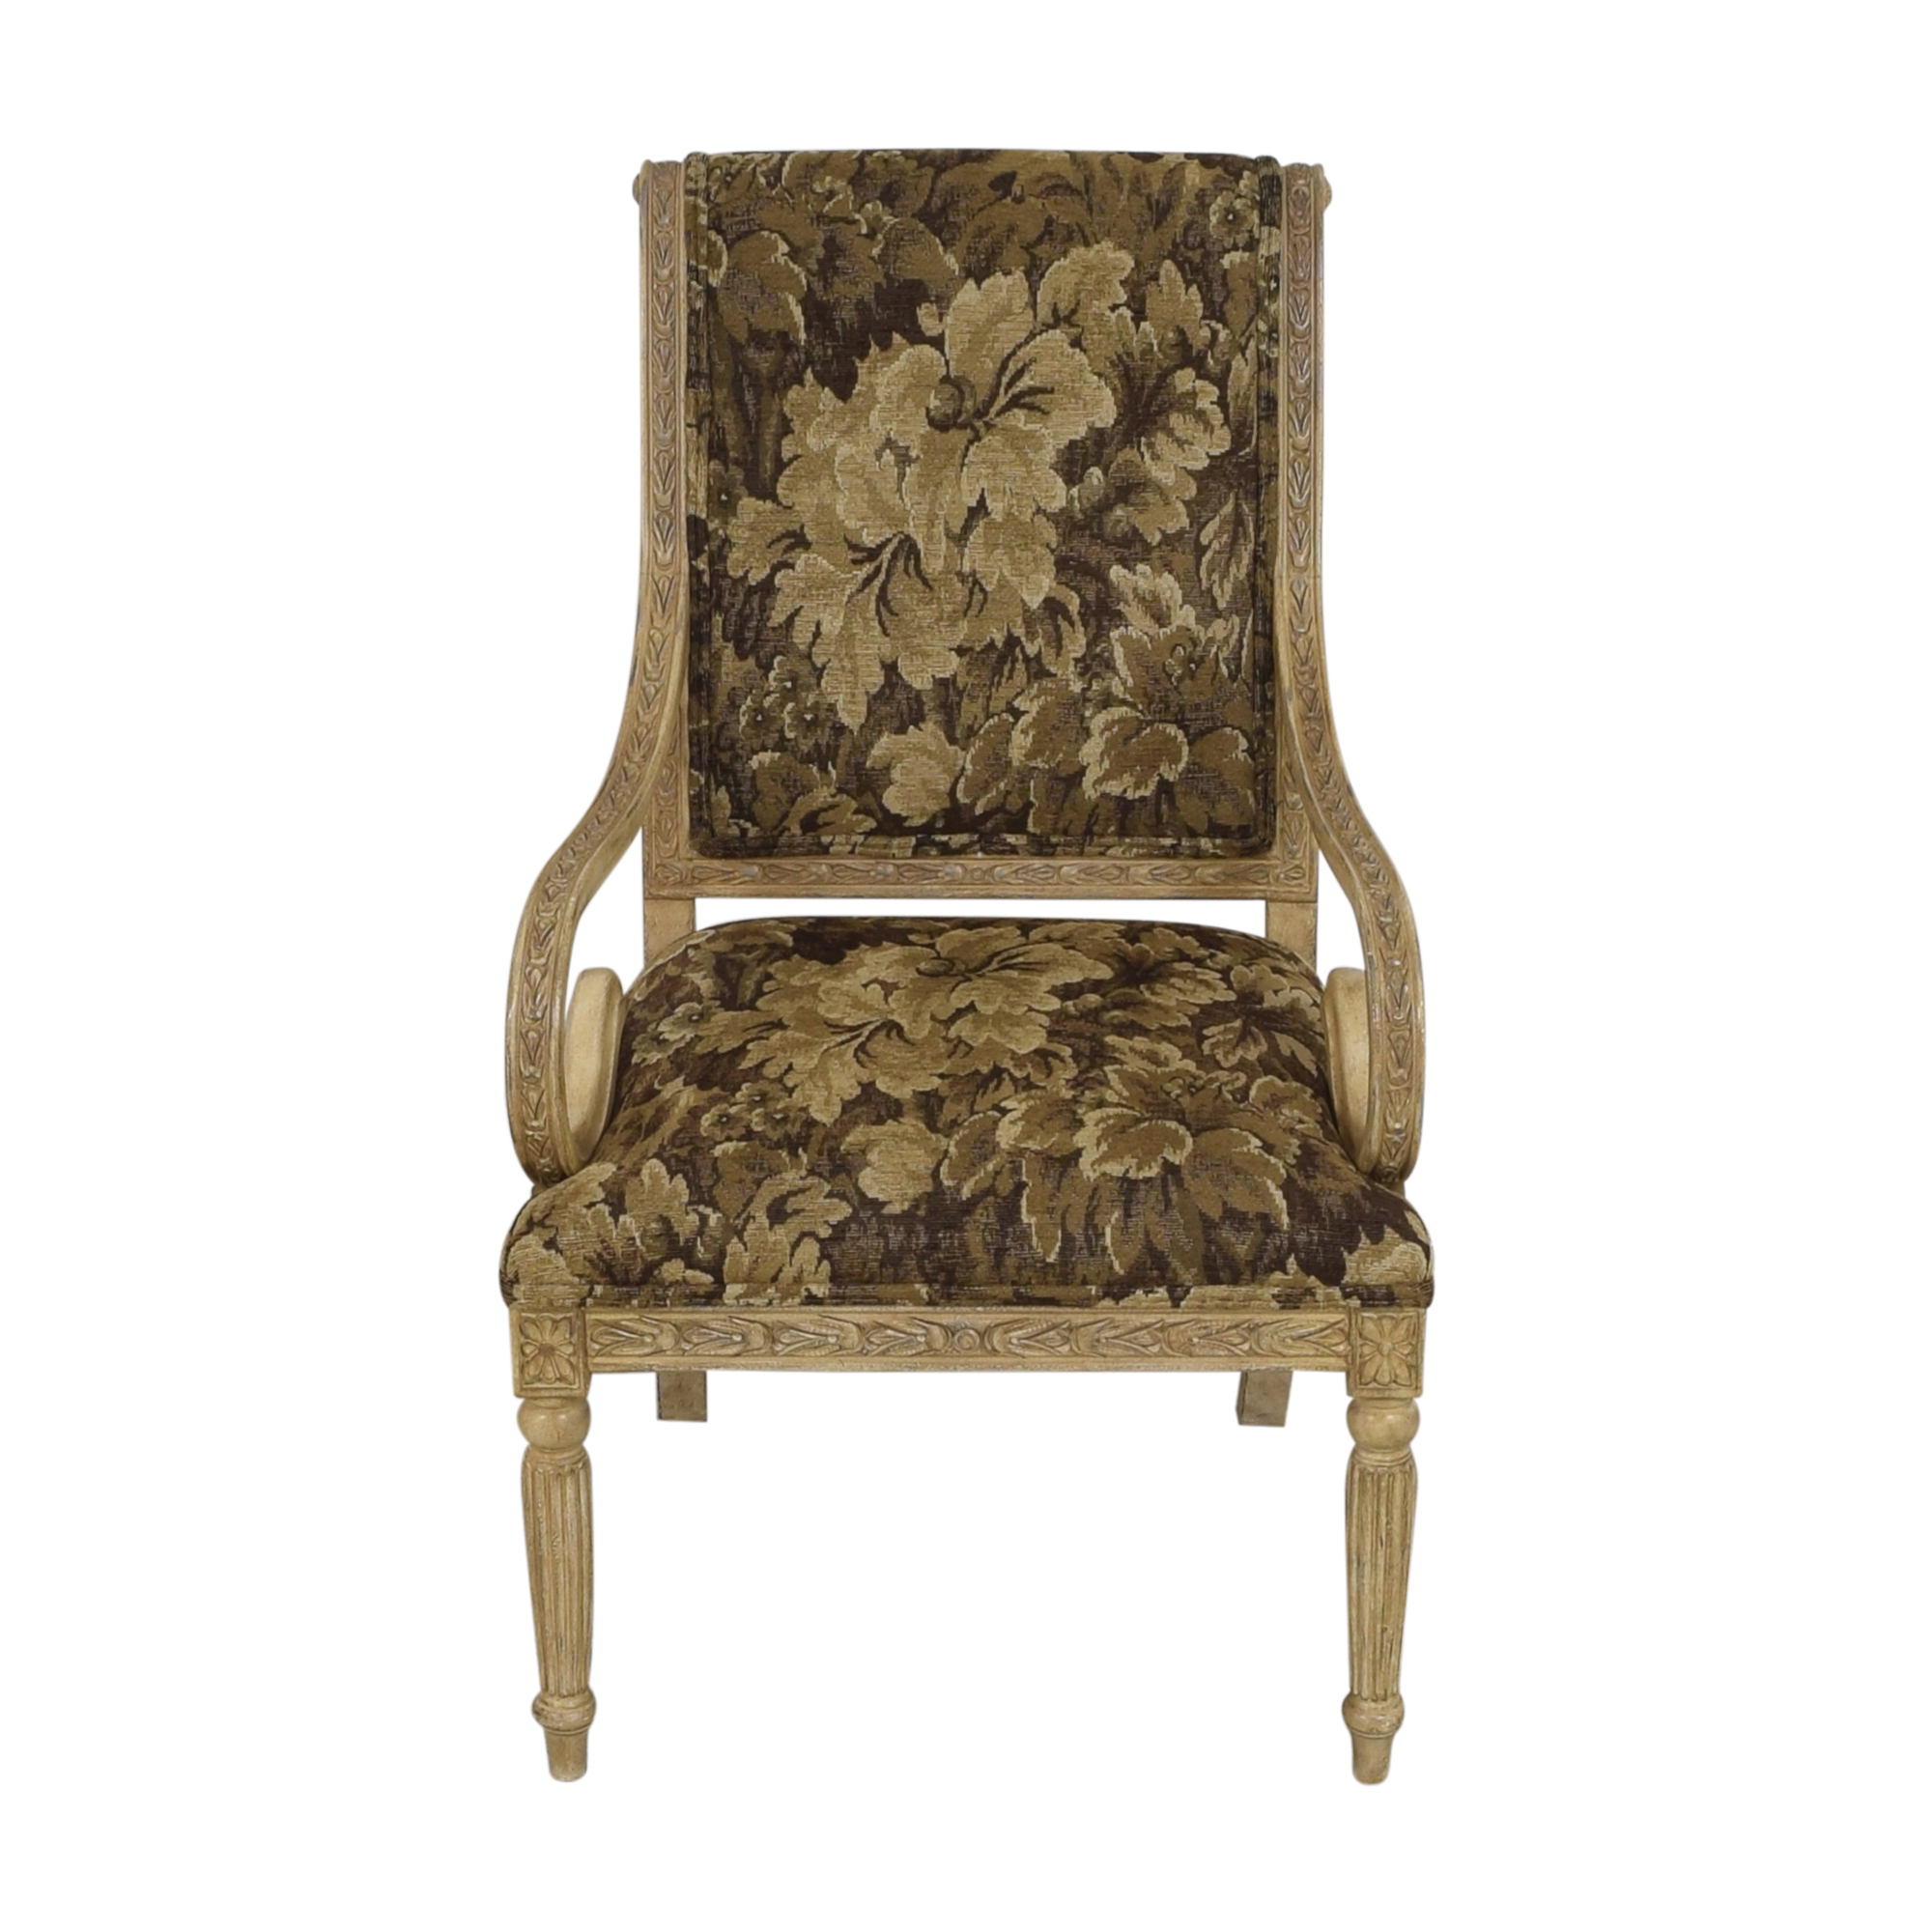 Calico Decorative Accent Chair / Accent Chairs